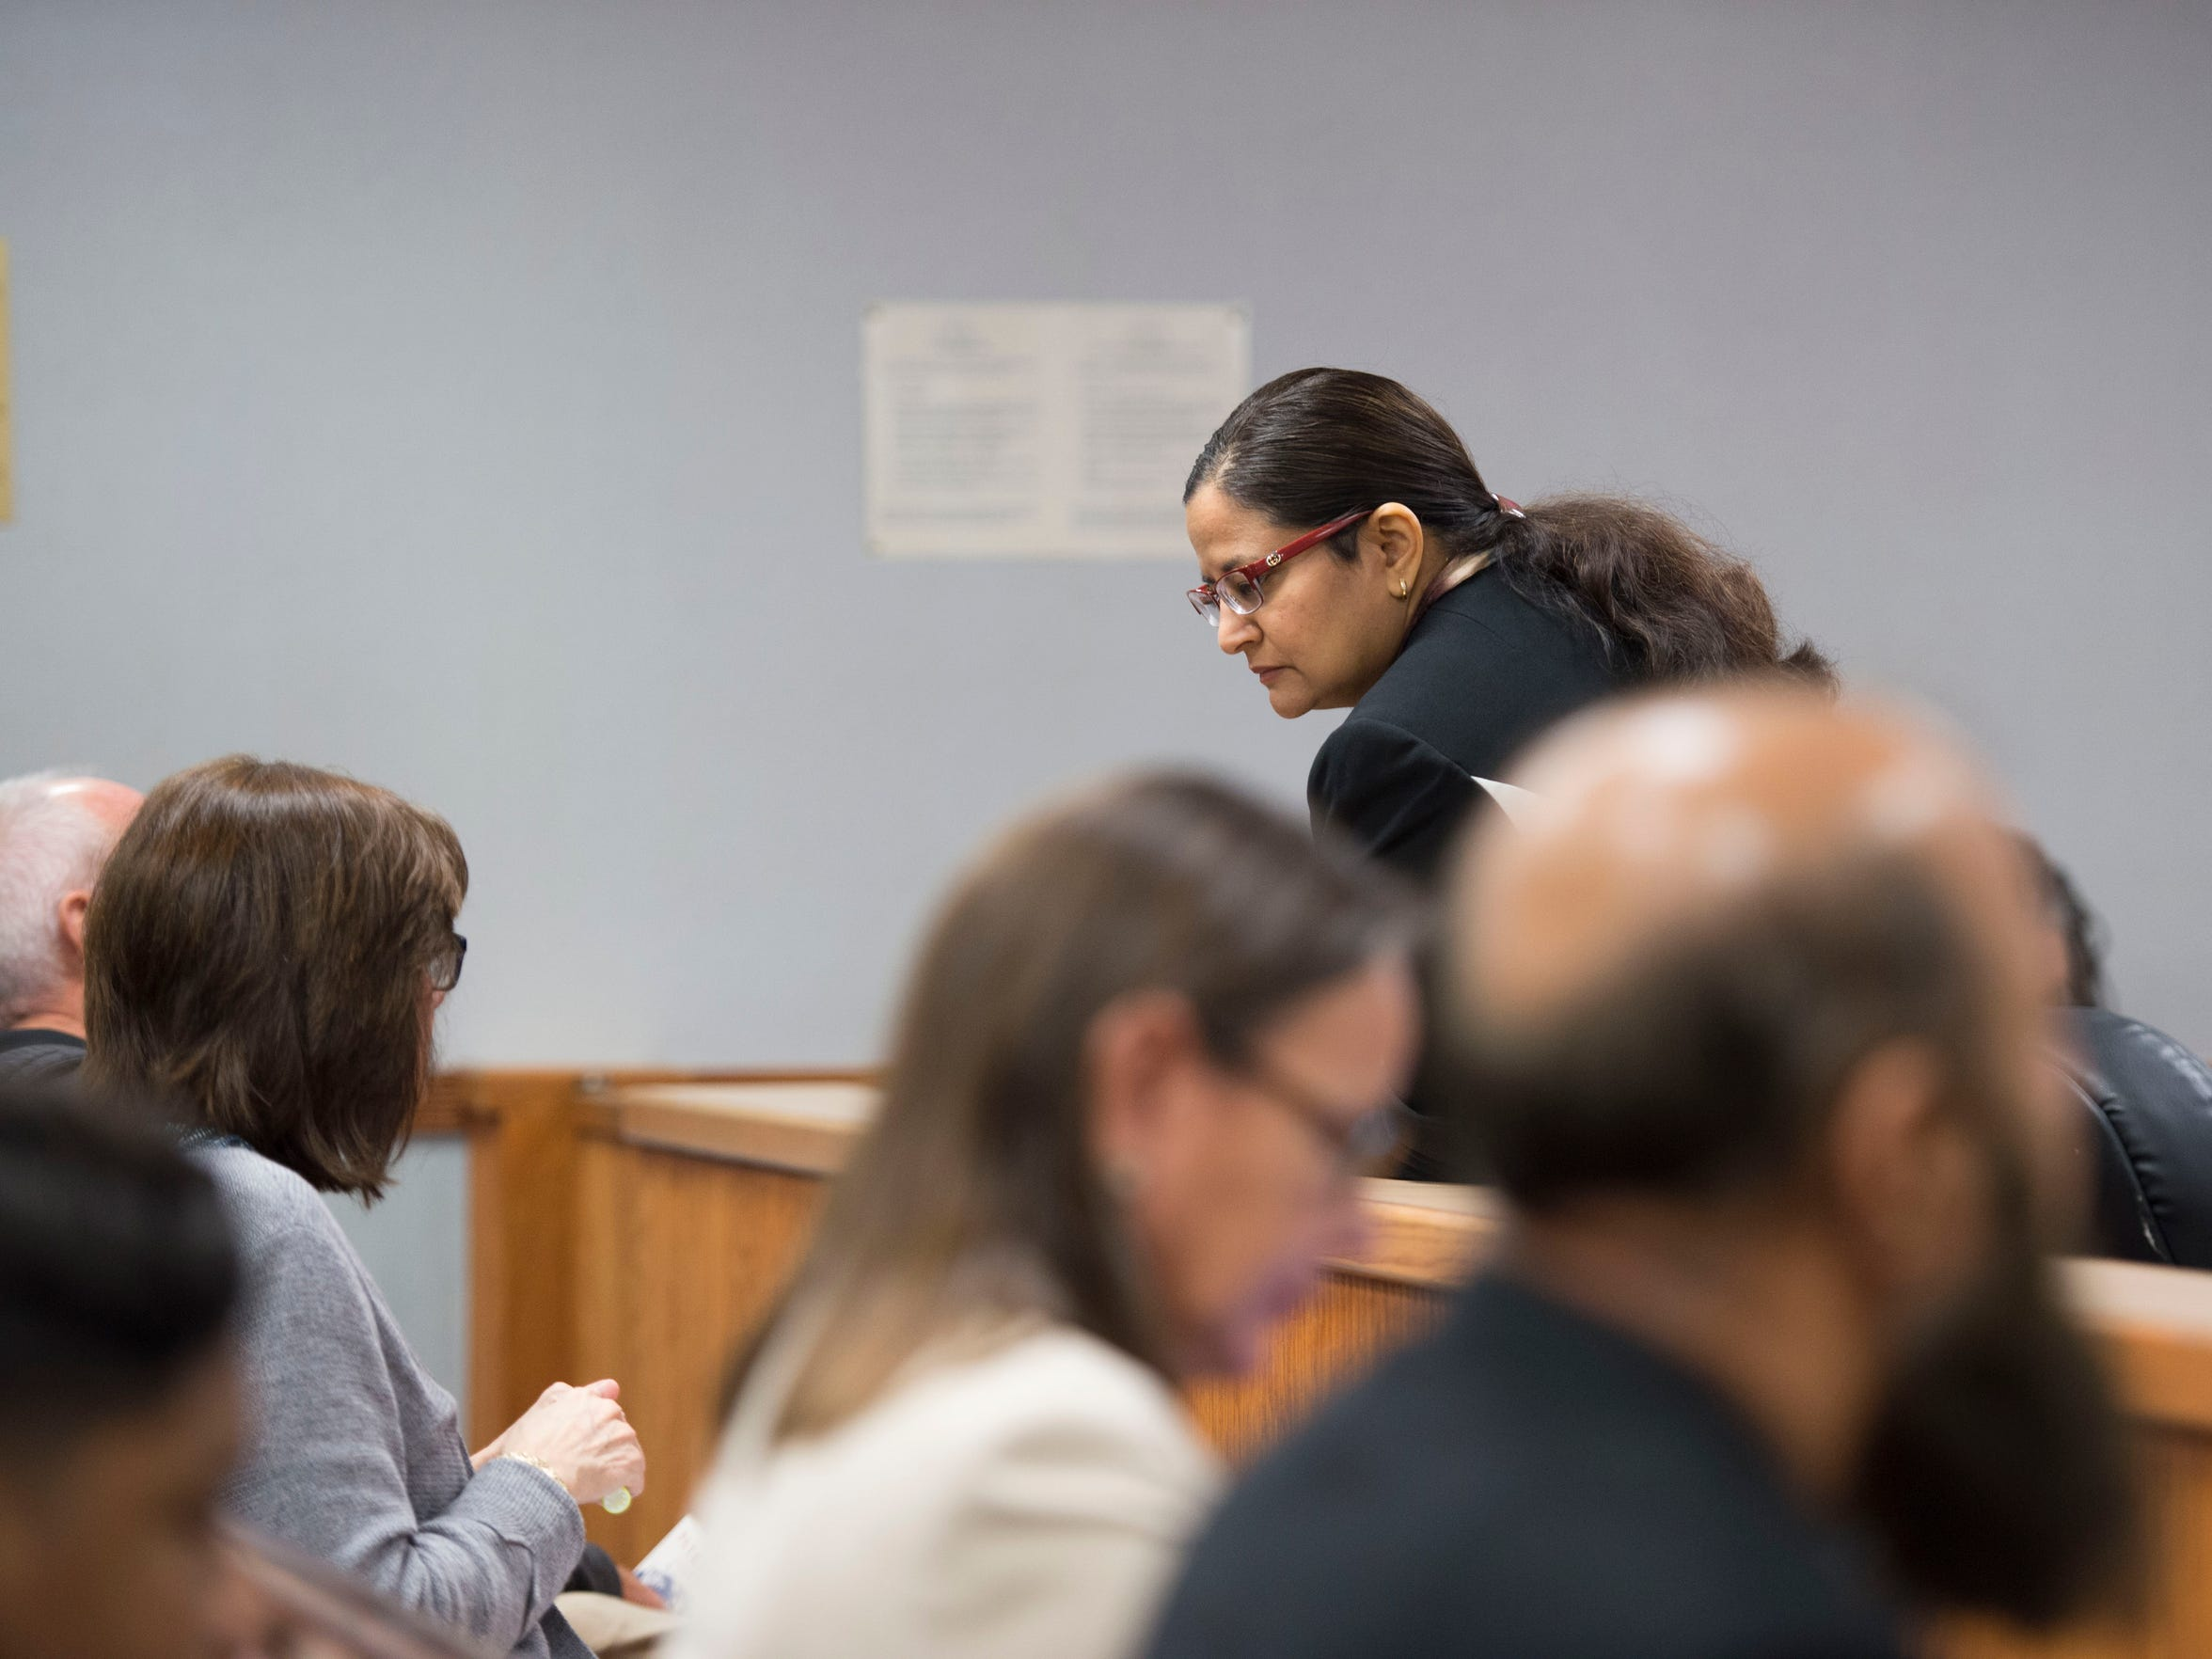 Usha Maharajh, assistant public defender, represented Lanadieal Ashe during her resentencing hearing on Monday, Dec. 18, 2017 at the St. Lucie County Courthouse in Fort Pierce. As a minor, Ashe was convicted and sentenced to life in prison for the 1995 murder of convenience store owner Tariq Hussein, but due to new U.S. Supreme Court rulings, she is allowed a new sentence.